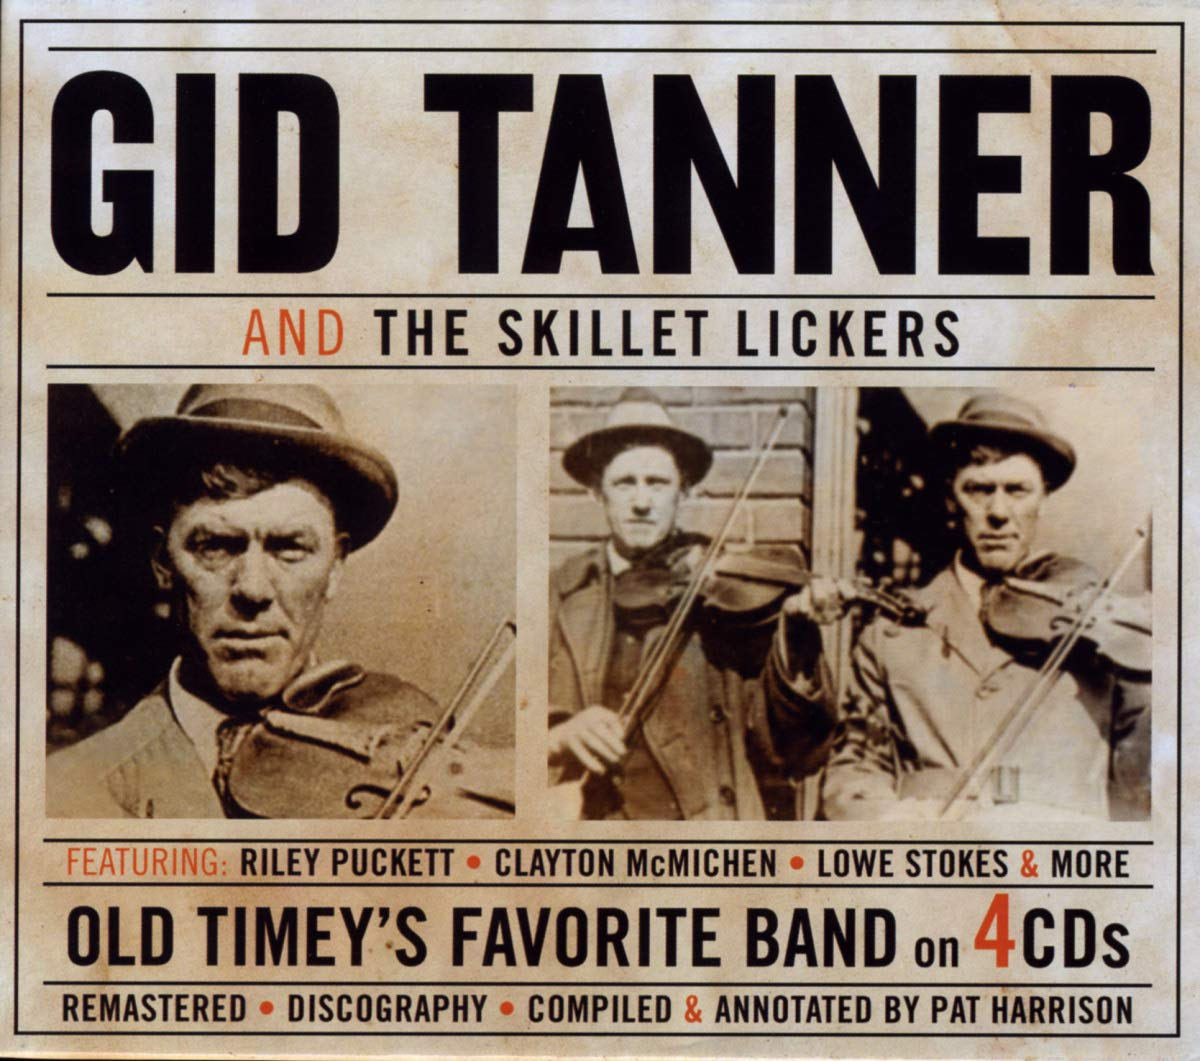 Tanner, Gid And The Skillet Lickers/Old Timey's Favorite Band 4CD [CD]